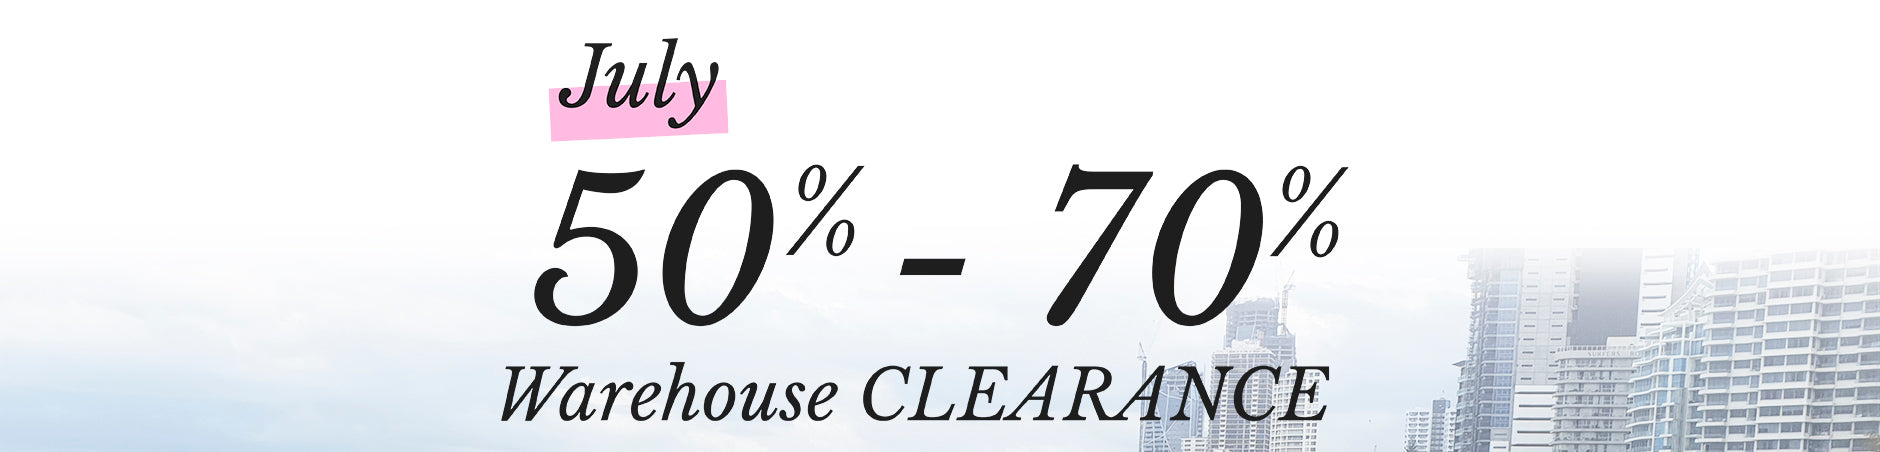 July 50% - 70% OFF Warehouse Clearance